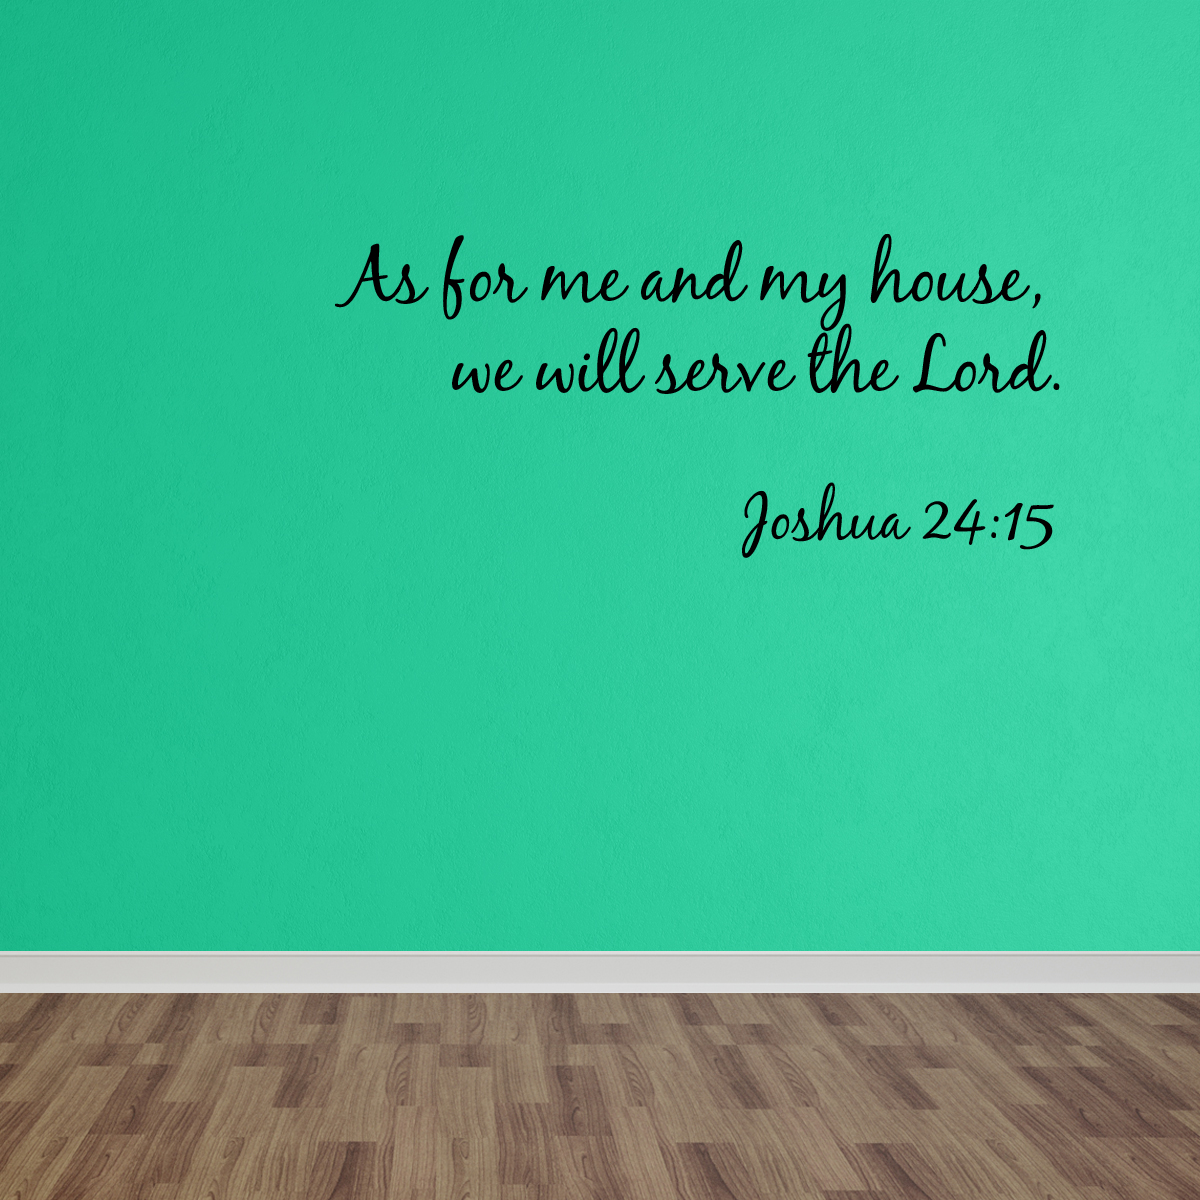 Wall Decal Quote As For Me And My House Bible Verse Decal Quote Christian Decal DP51